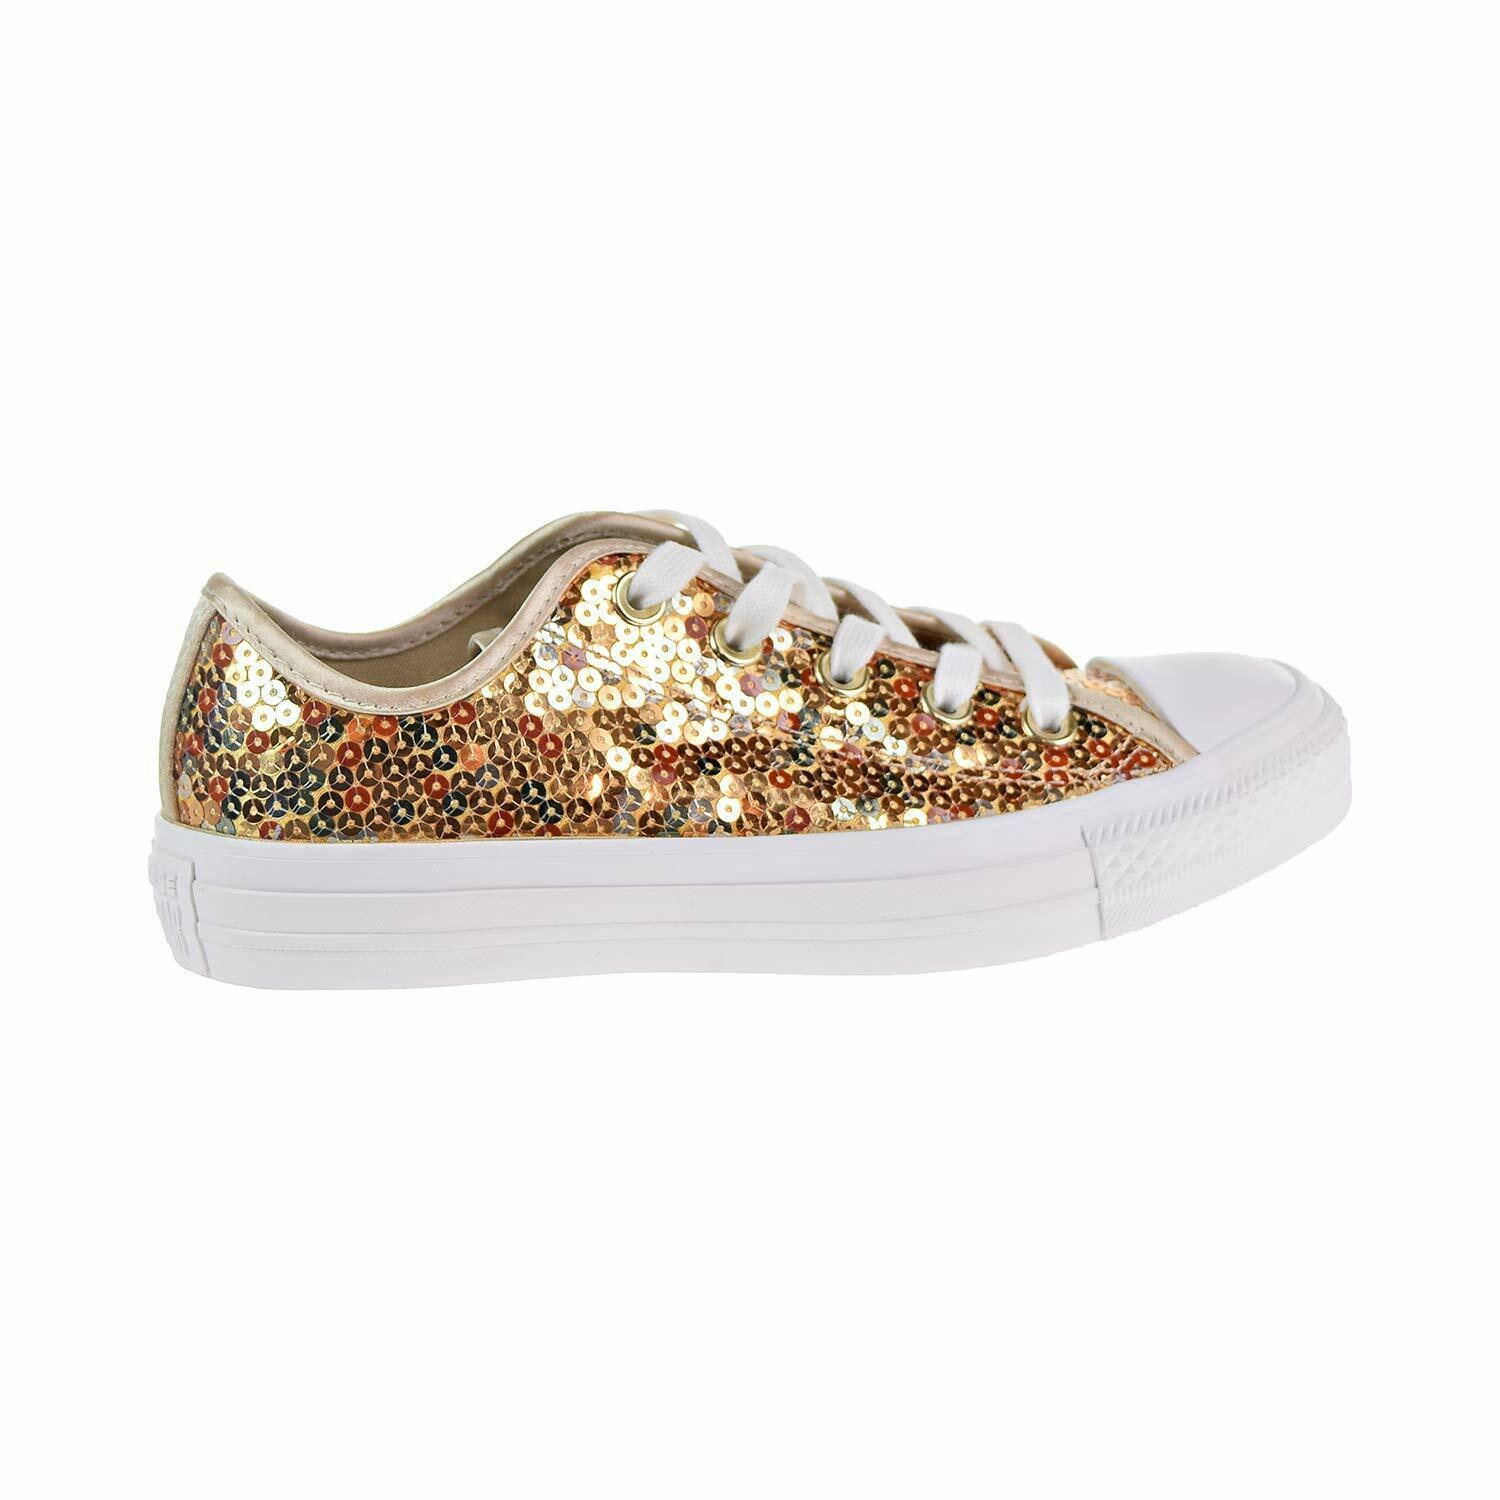 Primary image for CONVERSE WOMEN'S CHUCK TAYLOR ALL STAR OX SHOES LIGHT GOLD/WHITE 6 M US 562446C